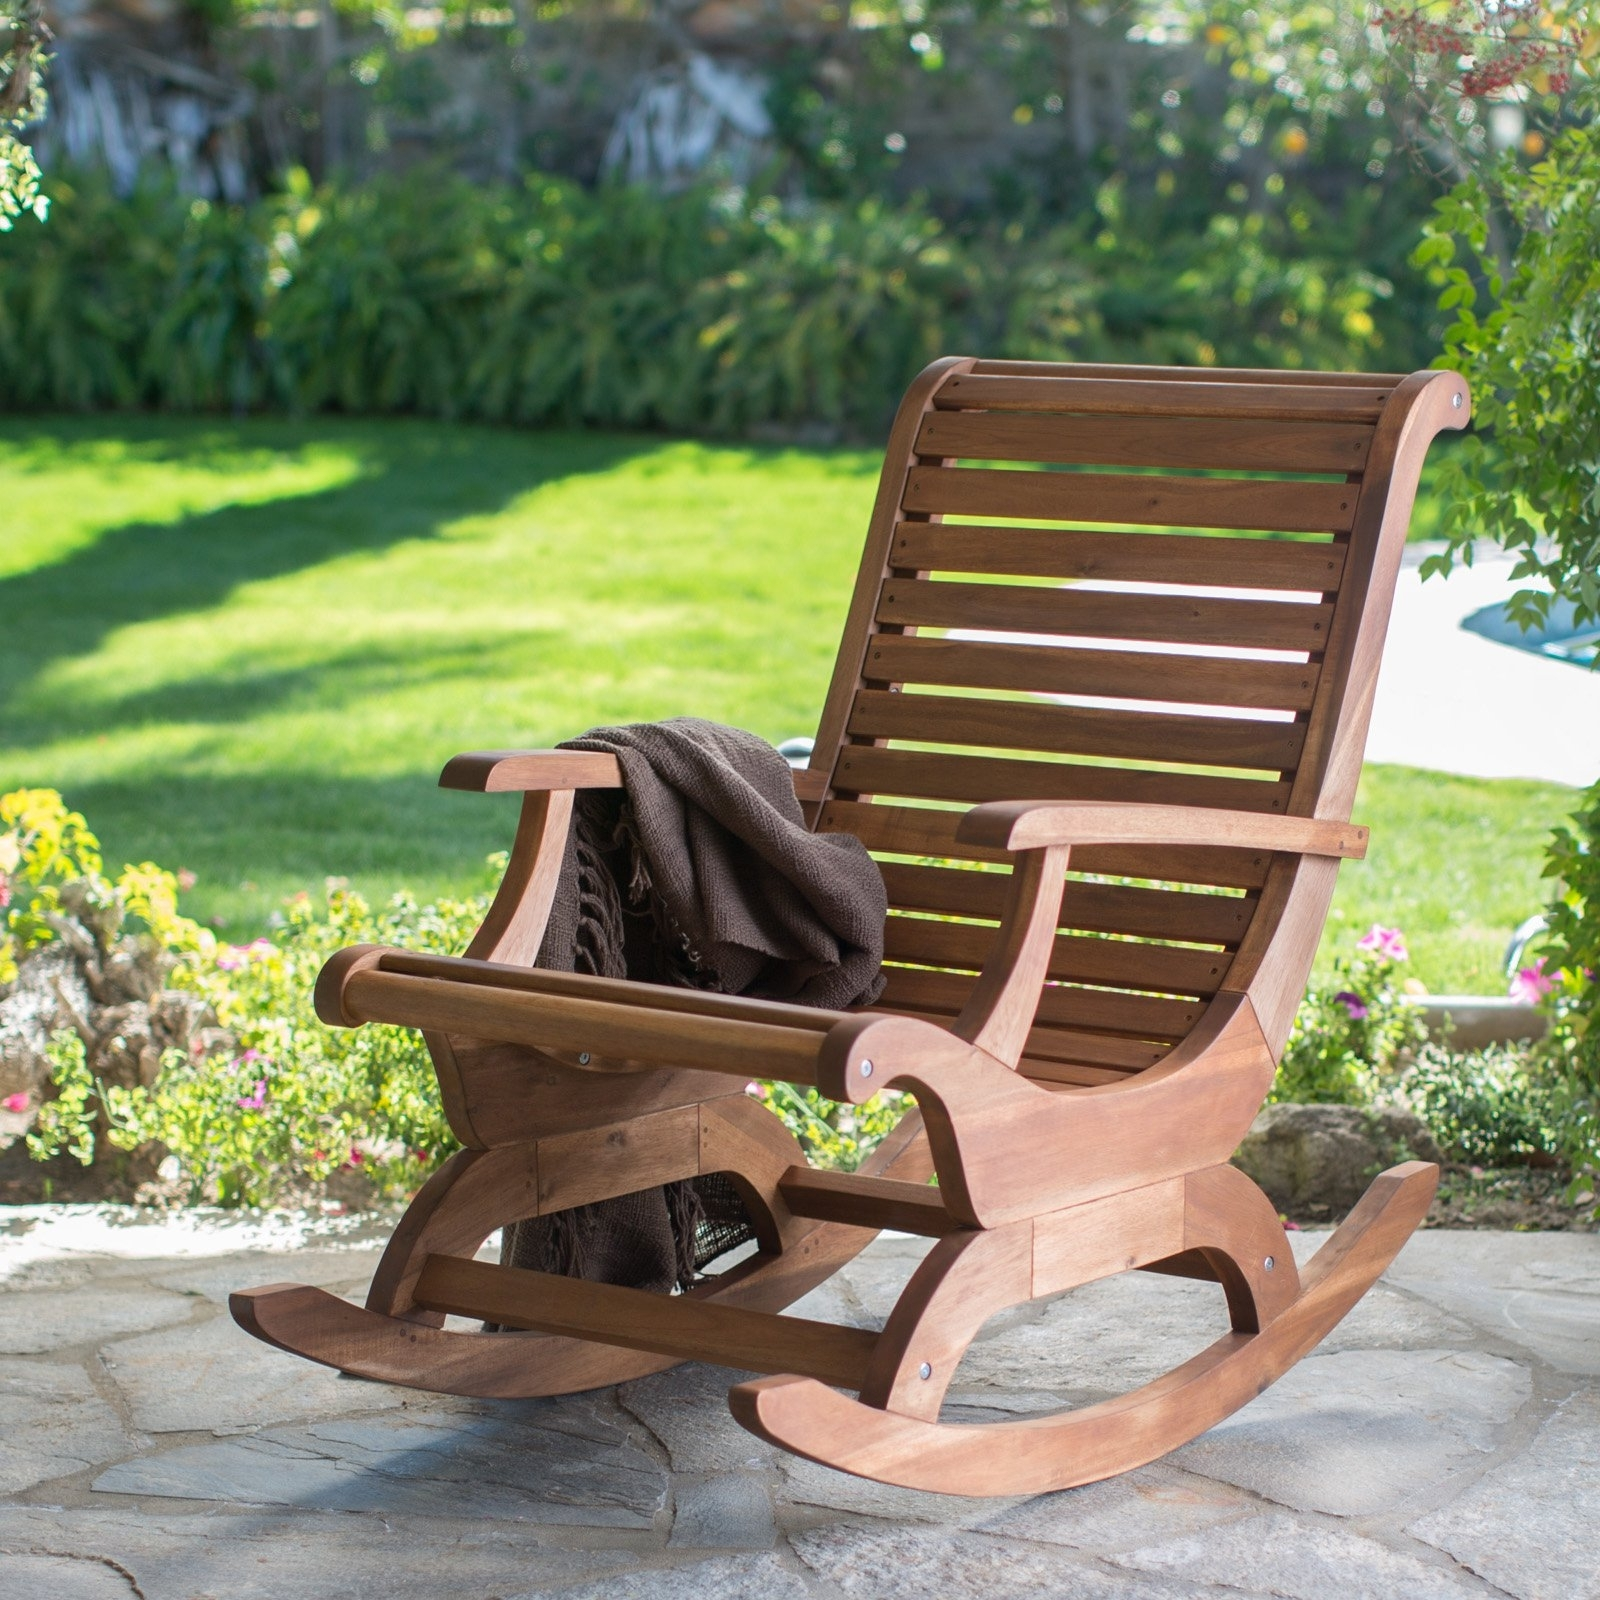 Most Recent Outdoor Rocking Chairs With Regard To Belham Living Avondale Oversized Outdoor Rocking Chair – Natural (View 5 of 15)